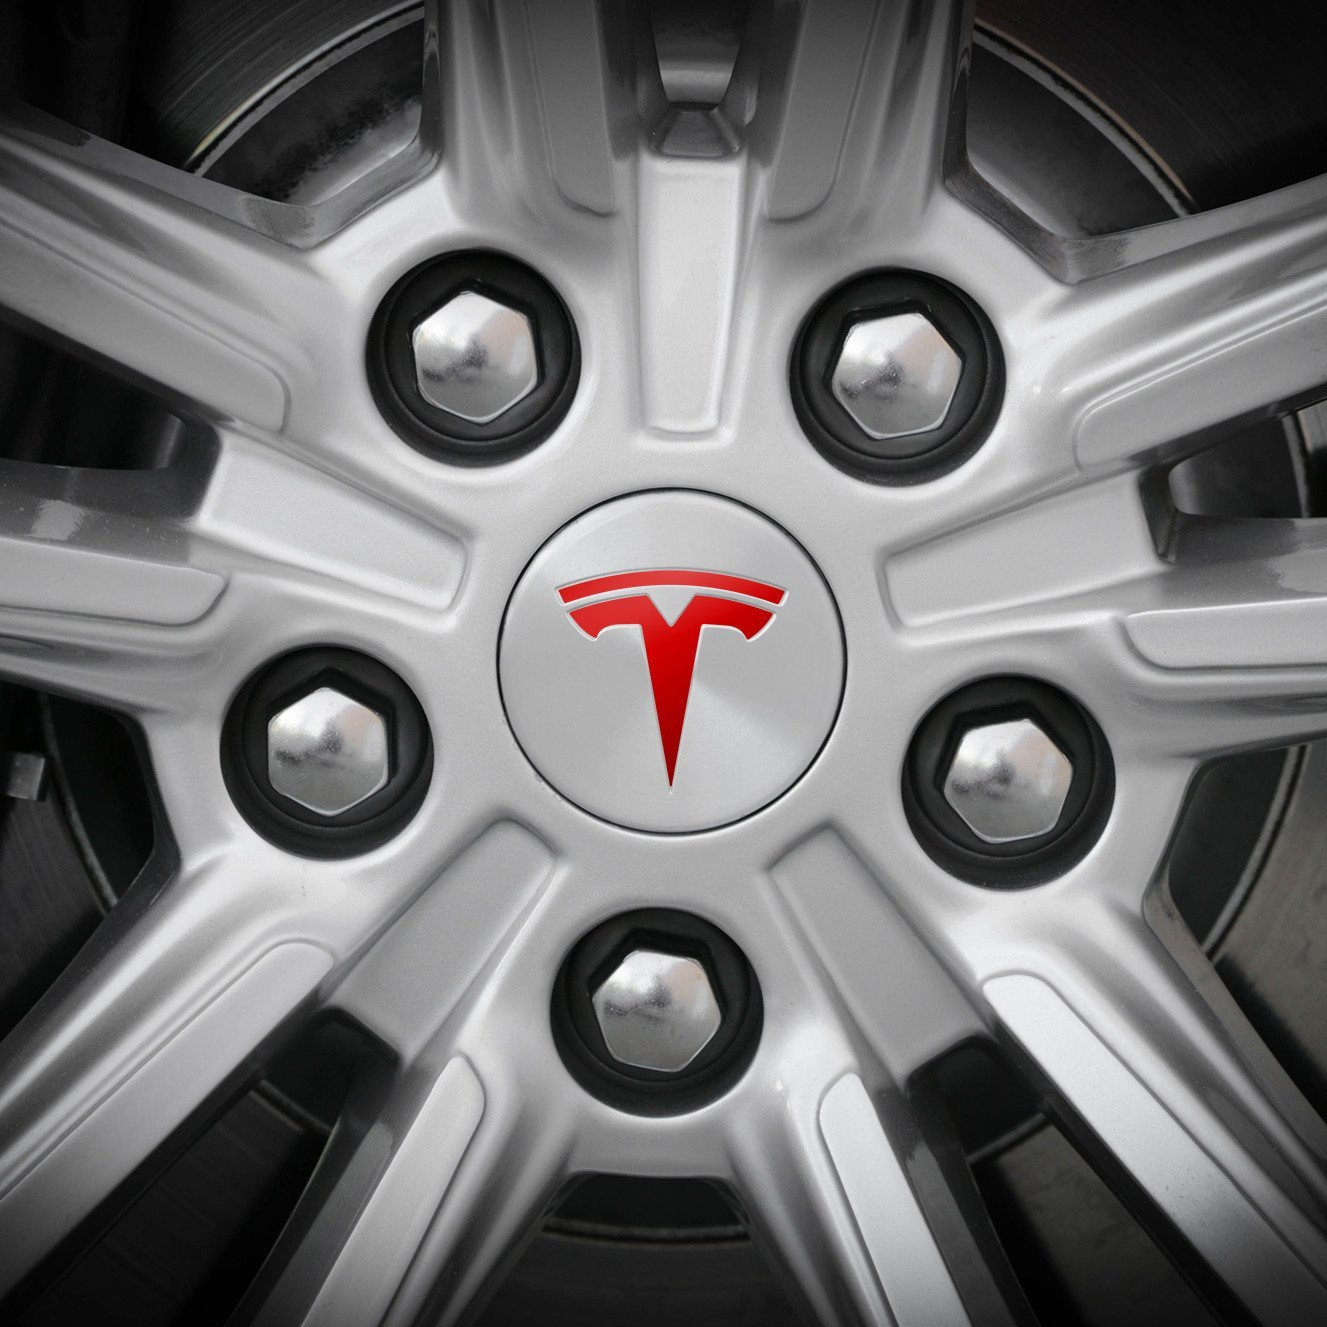 Tesla Wheel Decal (Carbon Fiber) S & K Manufacturing